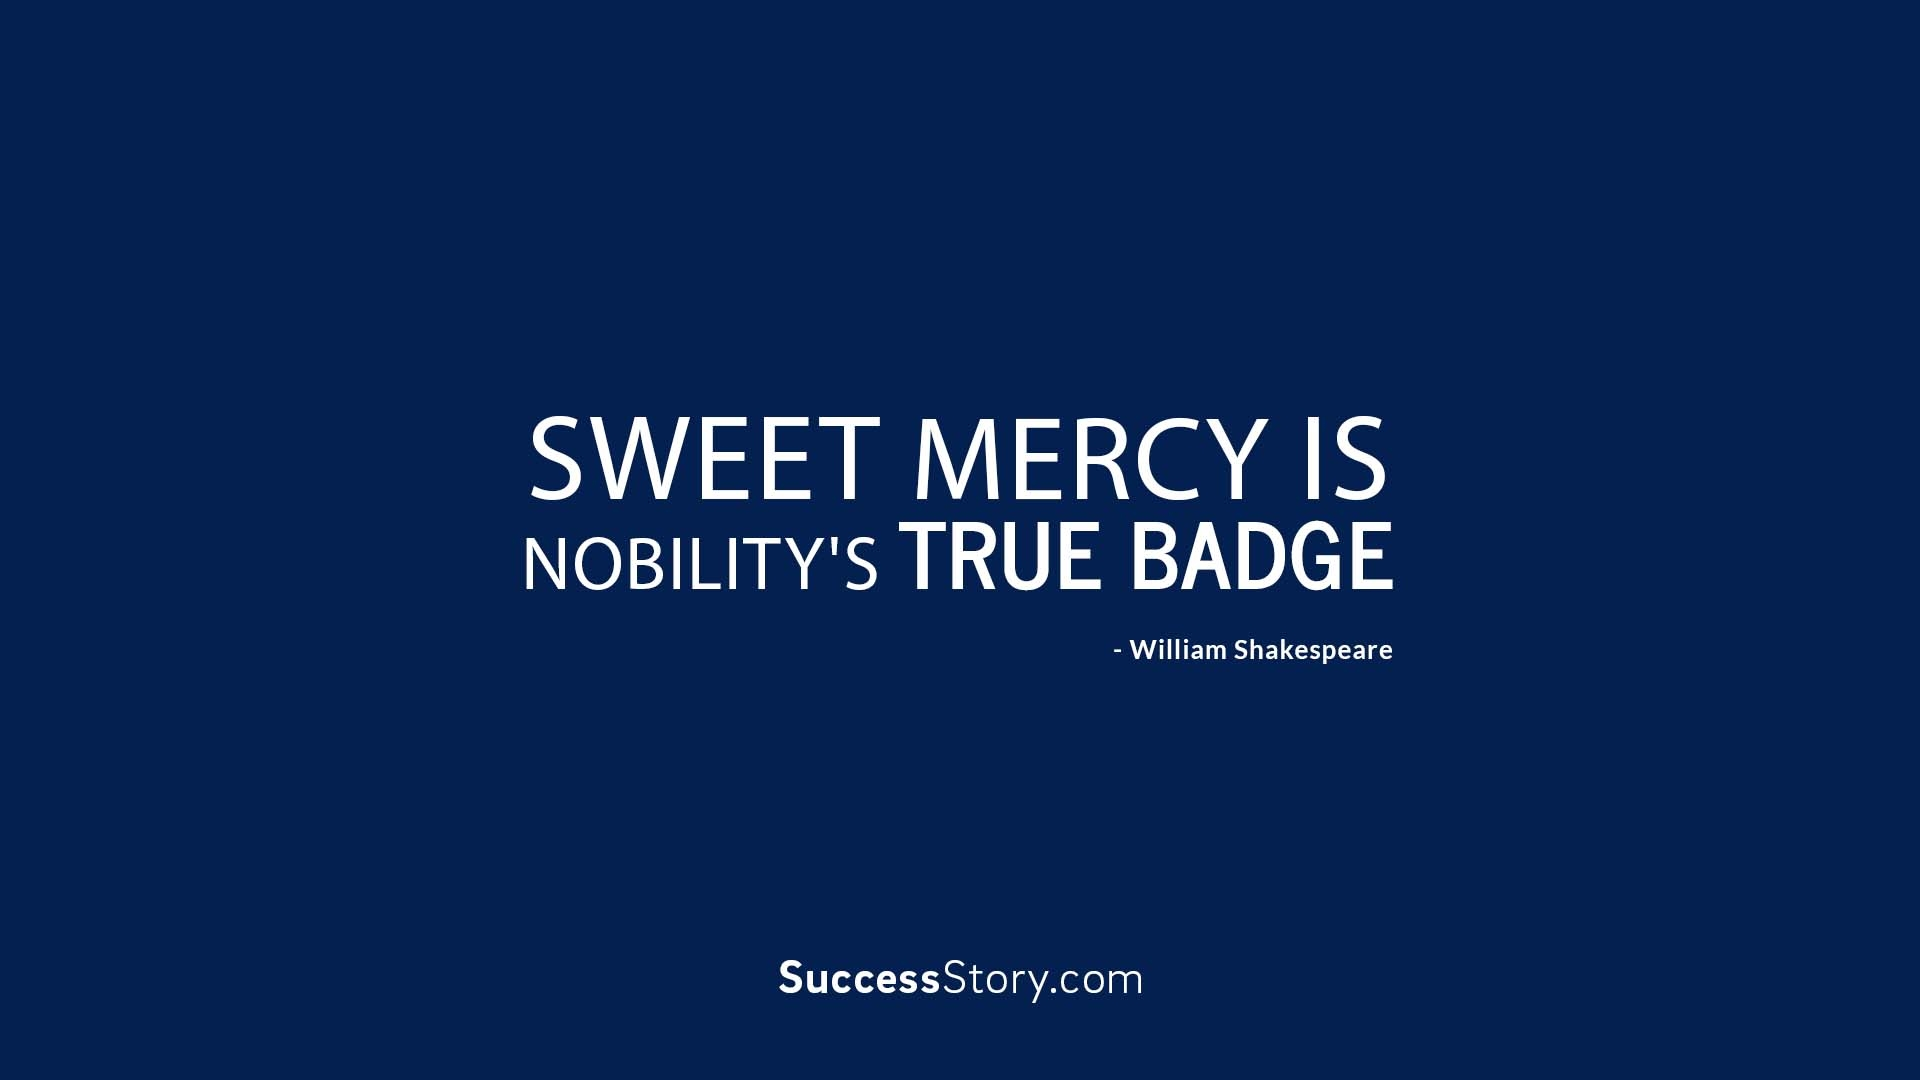 Sweet mercy is nobilit